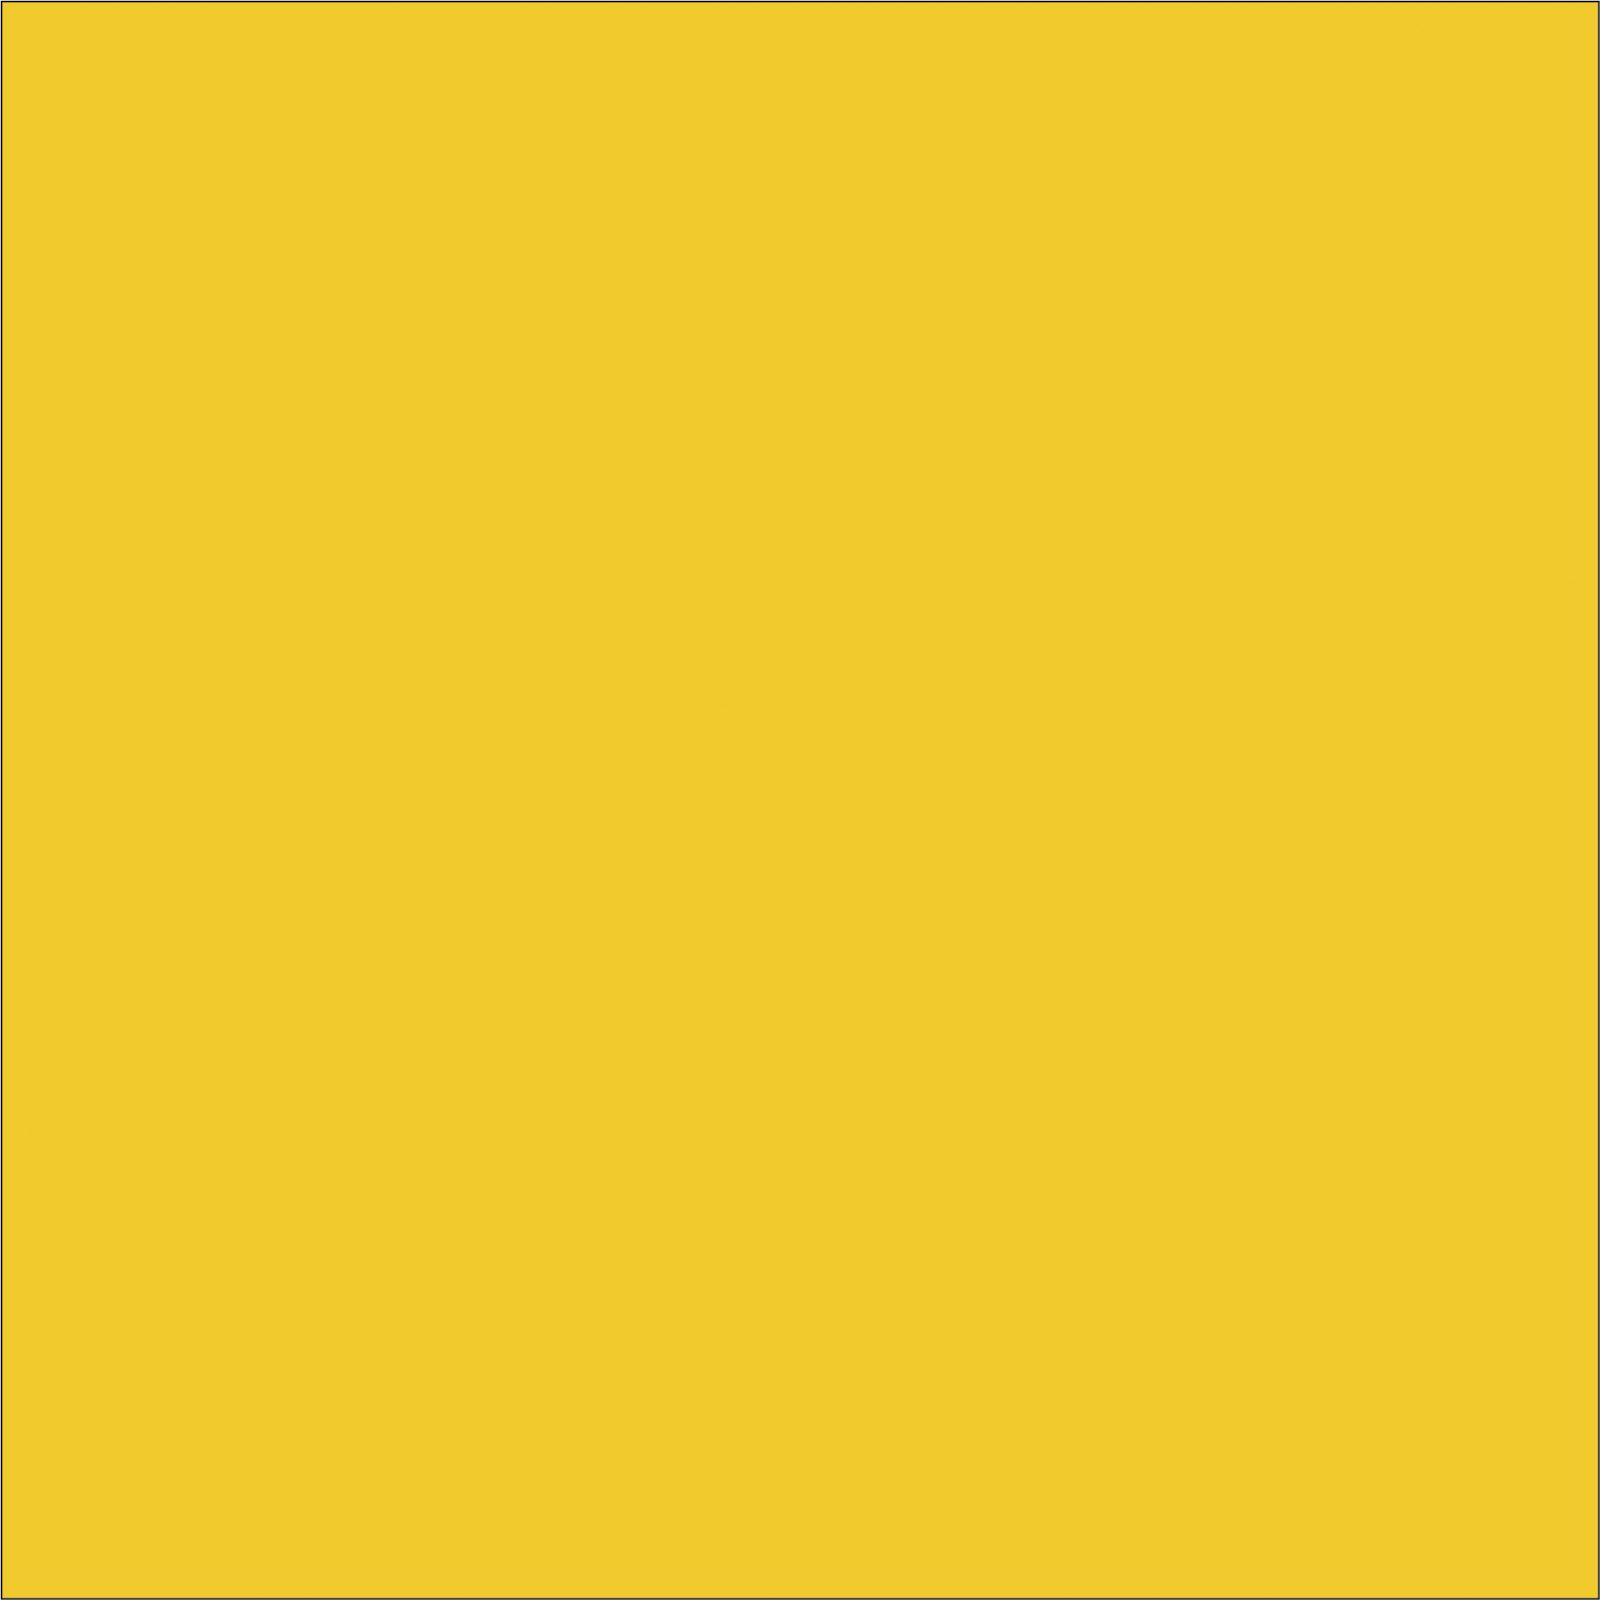 Colour swatch of Bright Yellow